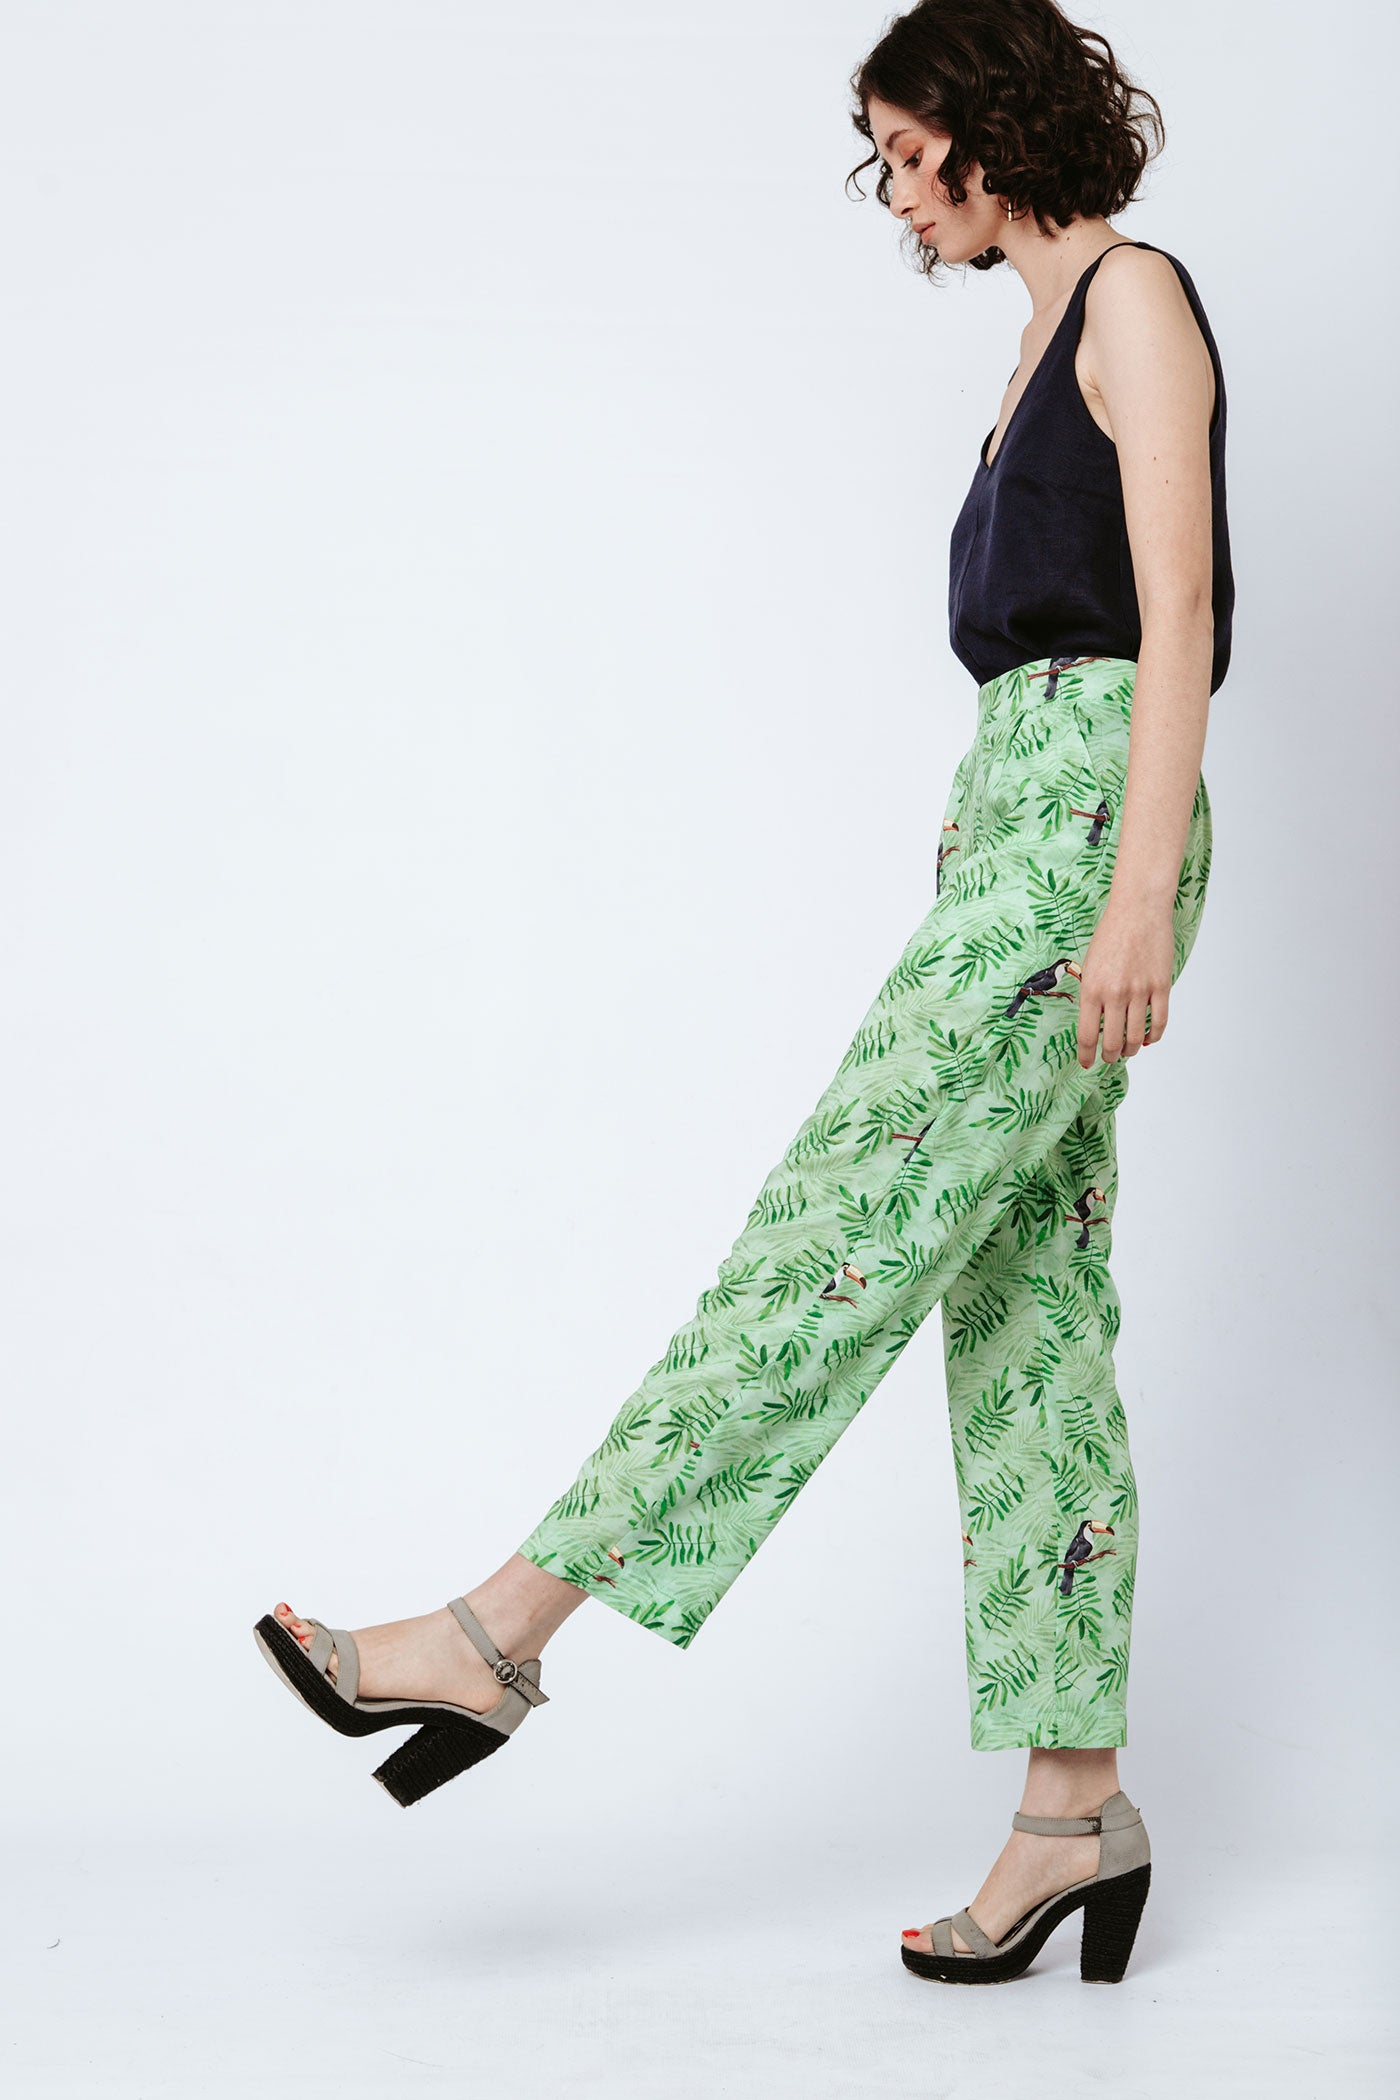 Kandy Pants - Green Toucans (sizes available: 30 & 32)